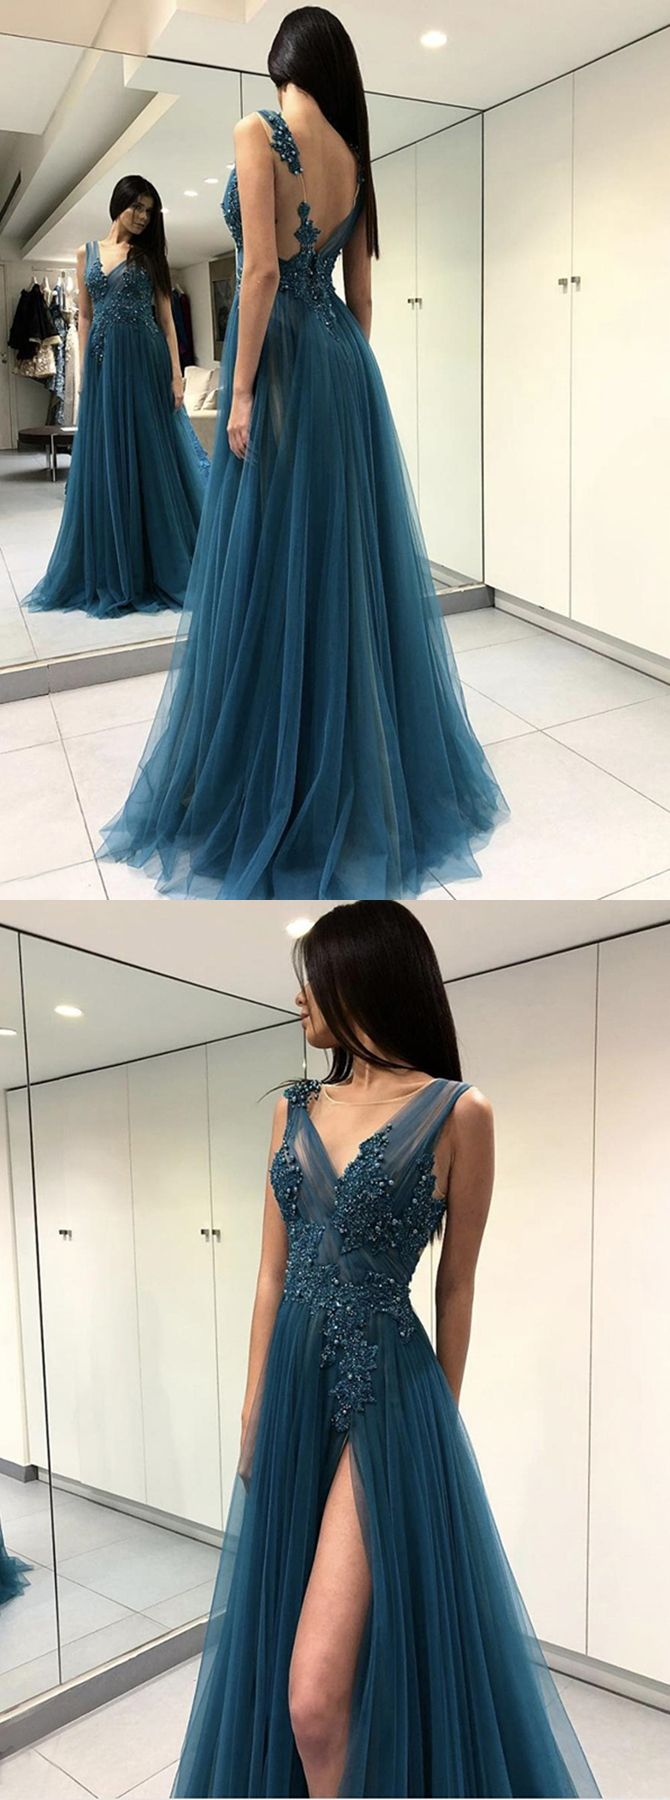 Chic aline round neck backless turquoise beaded prom dress with